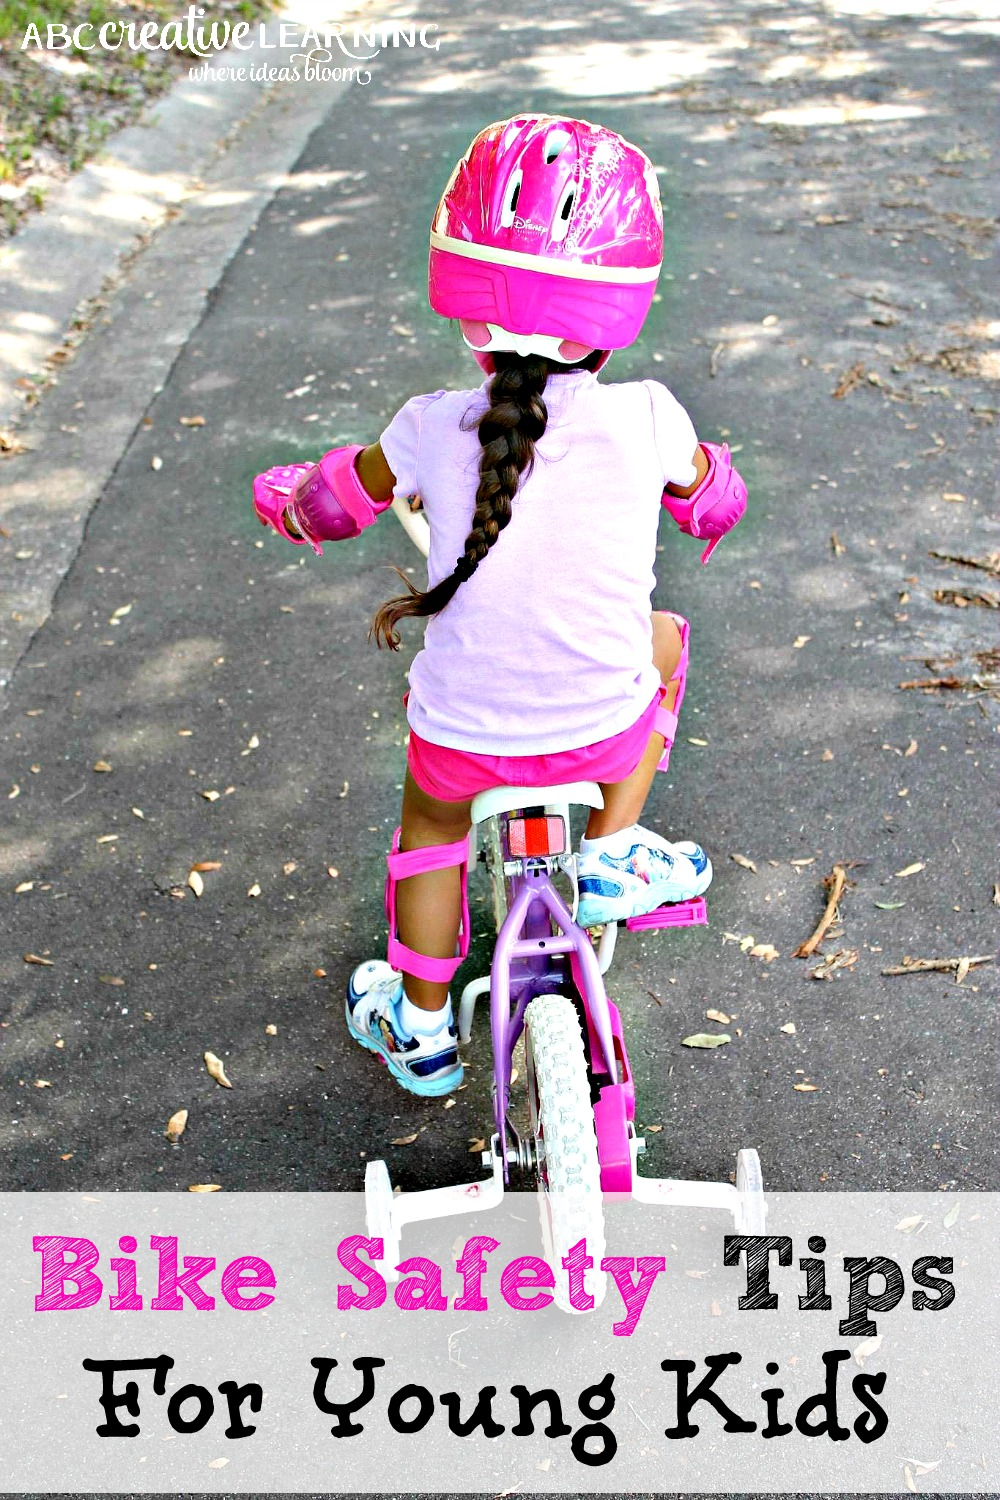 Bike Safety Tips For Young Kids WWM